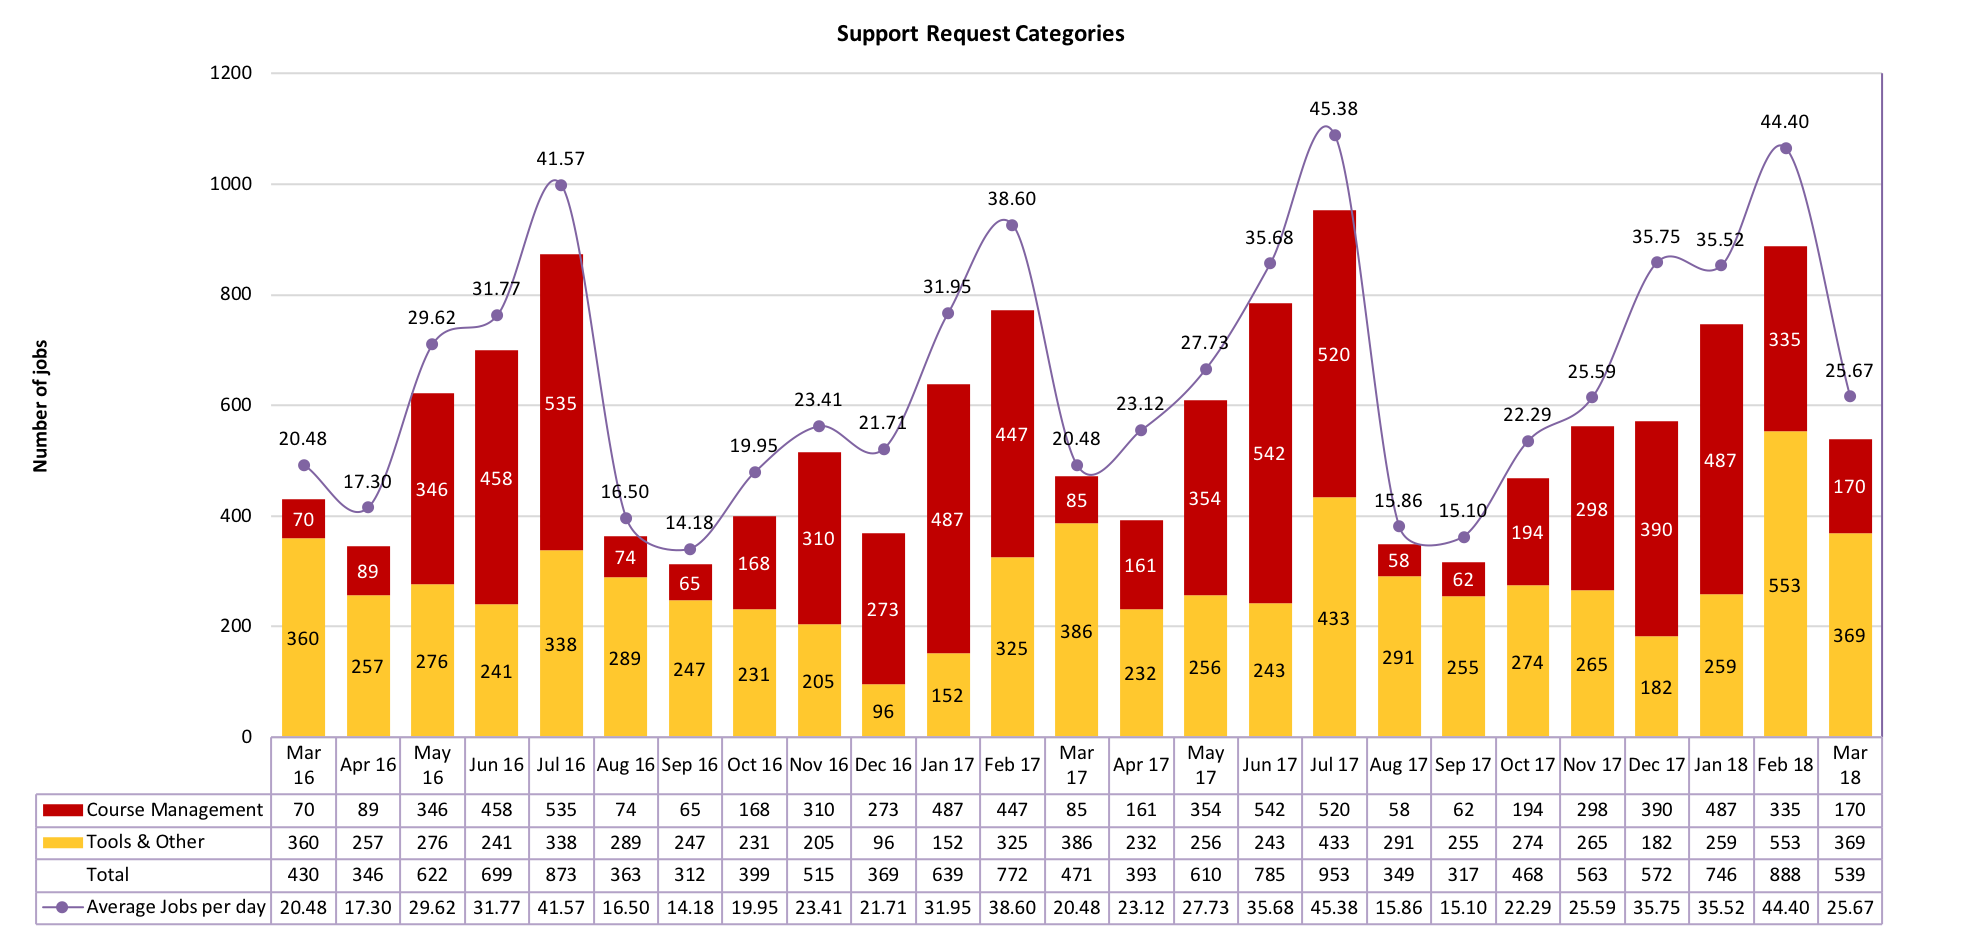 Chart of Support Request Categories from March 2016 to March 2018